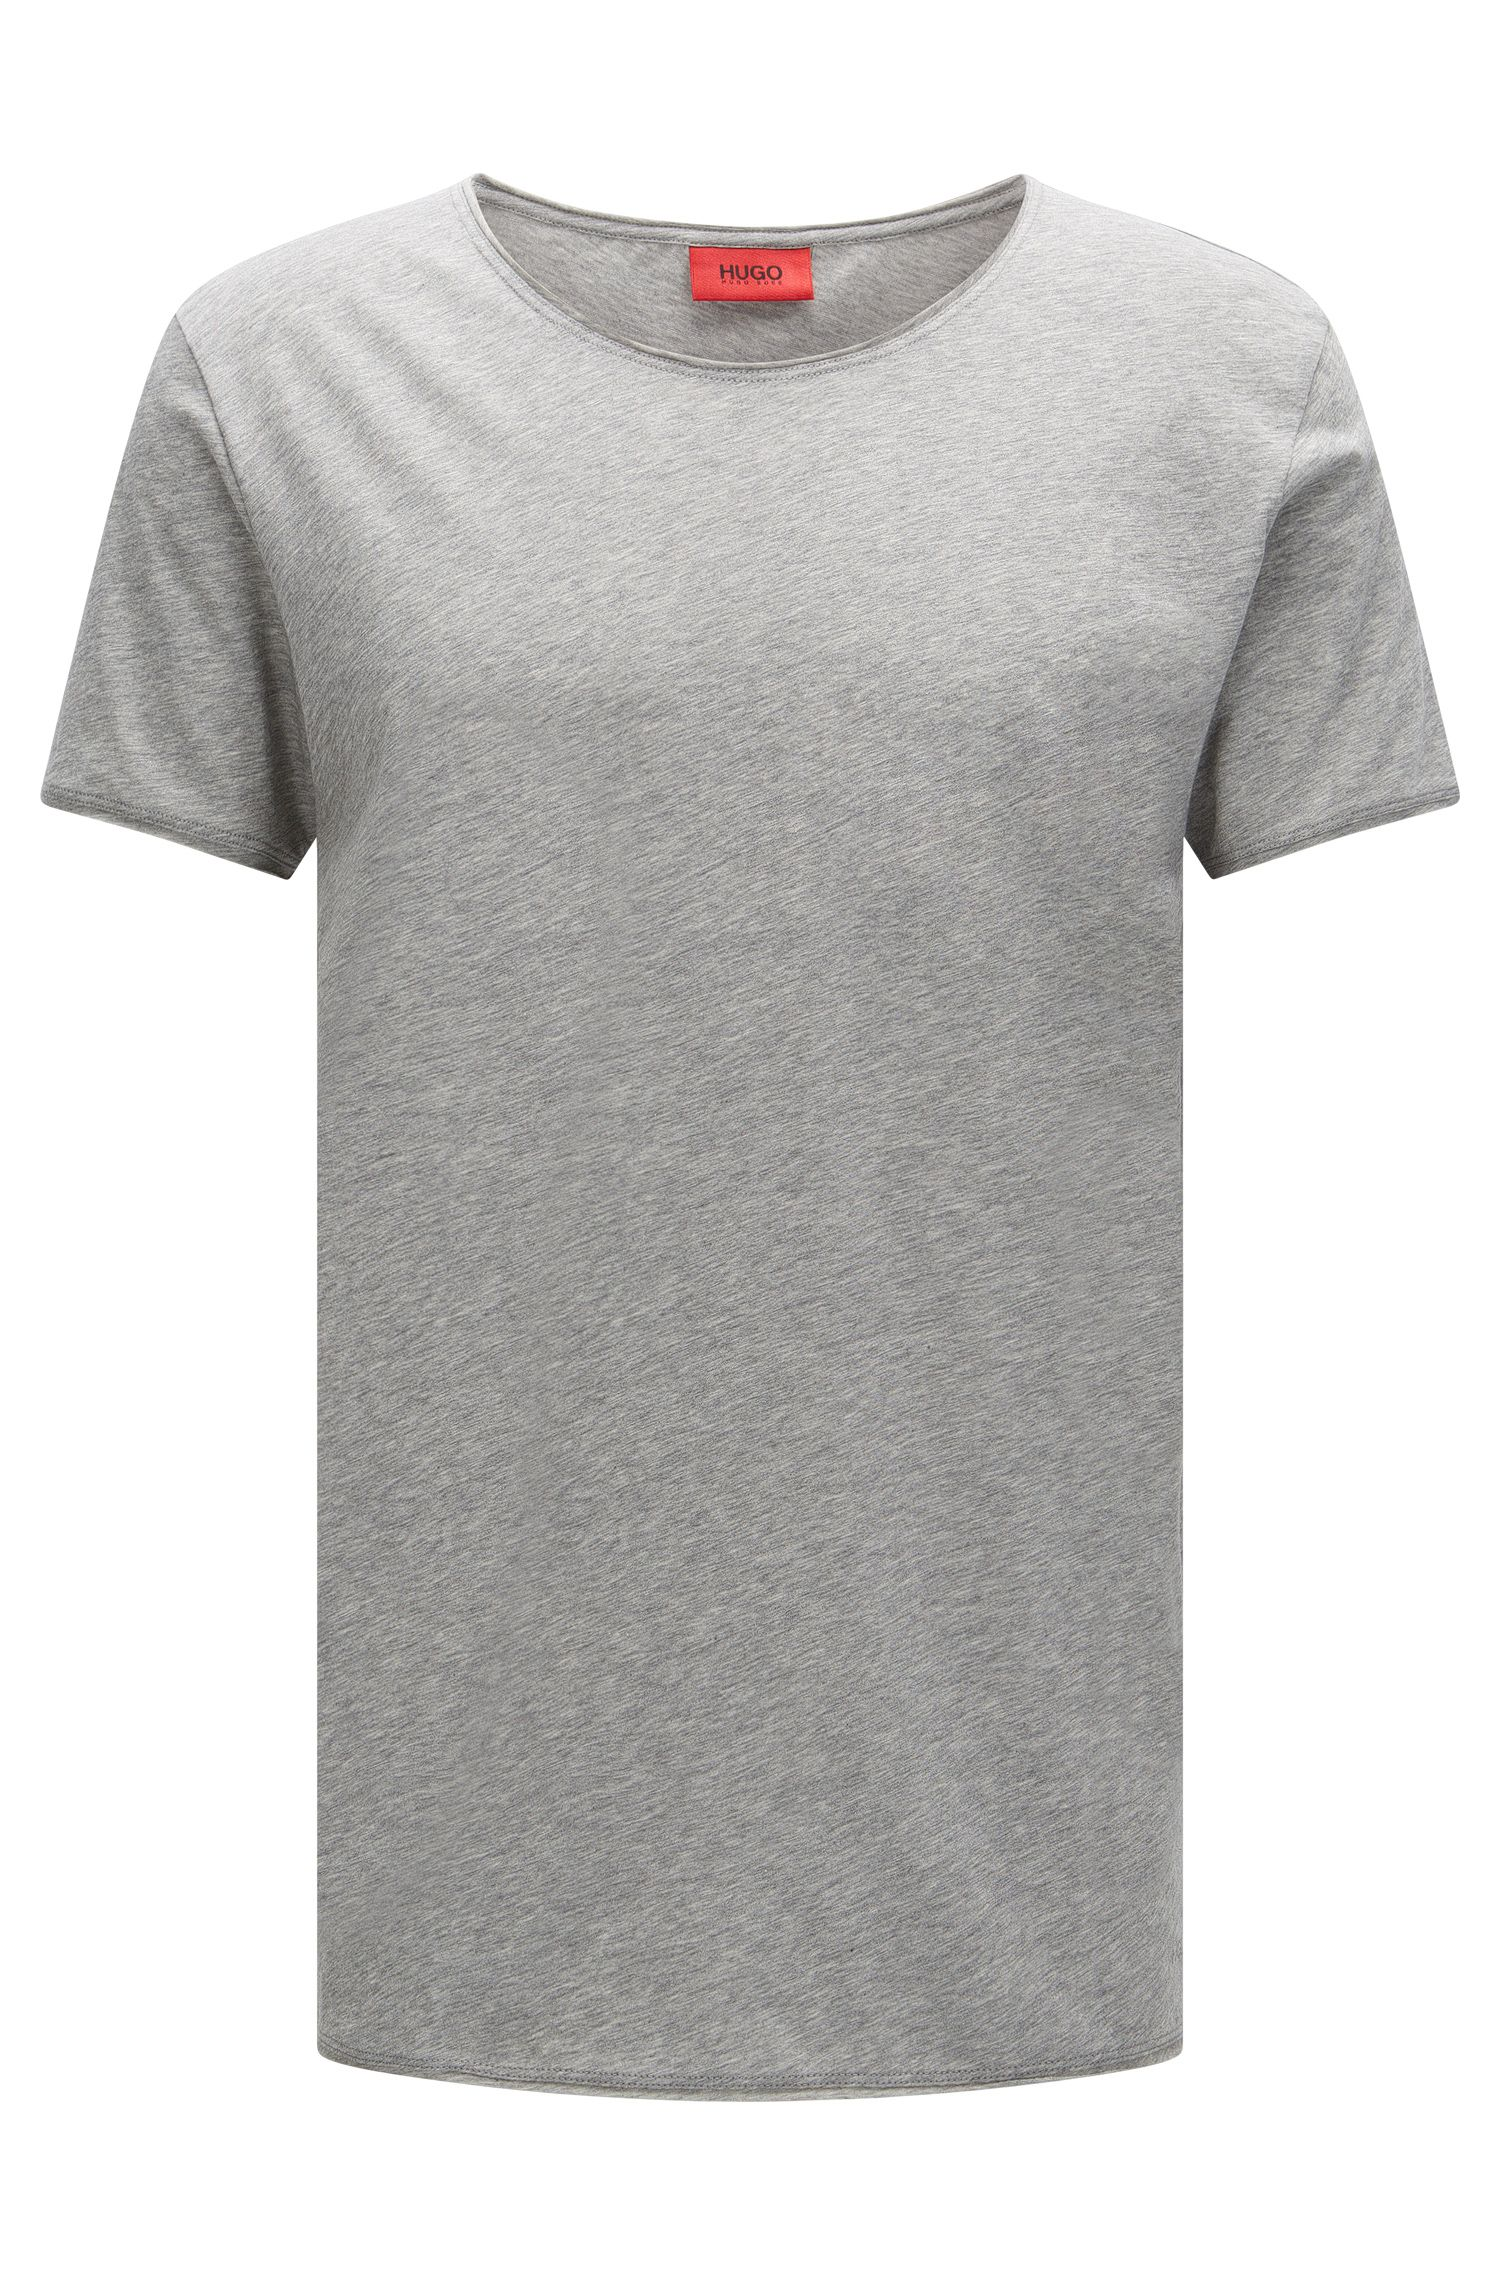 T-shirt Loose Fit en coton : « Depus »